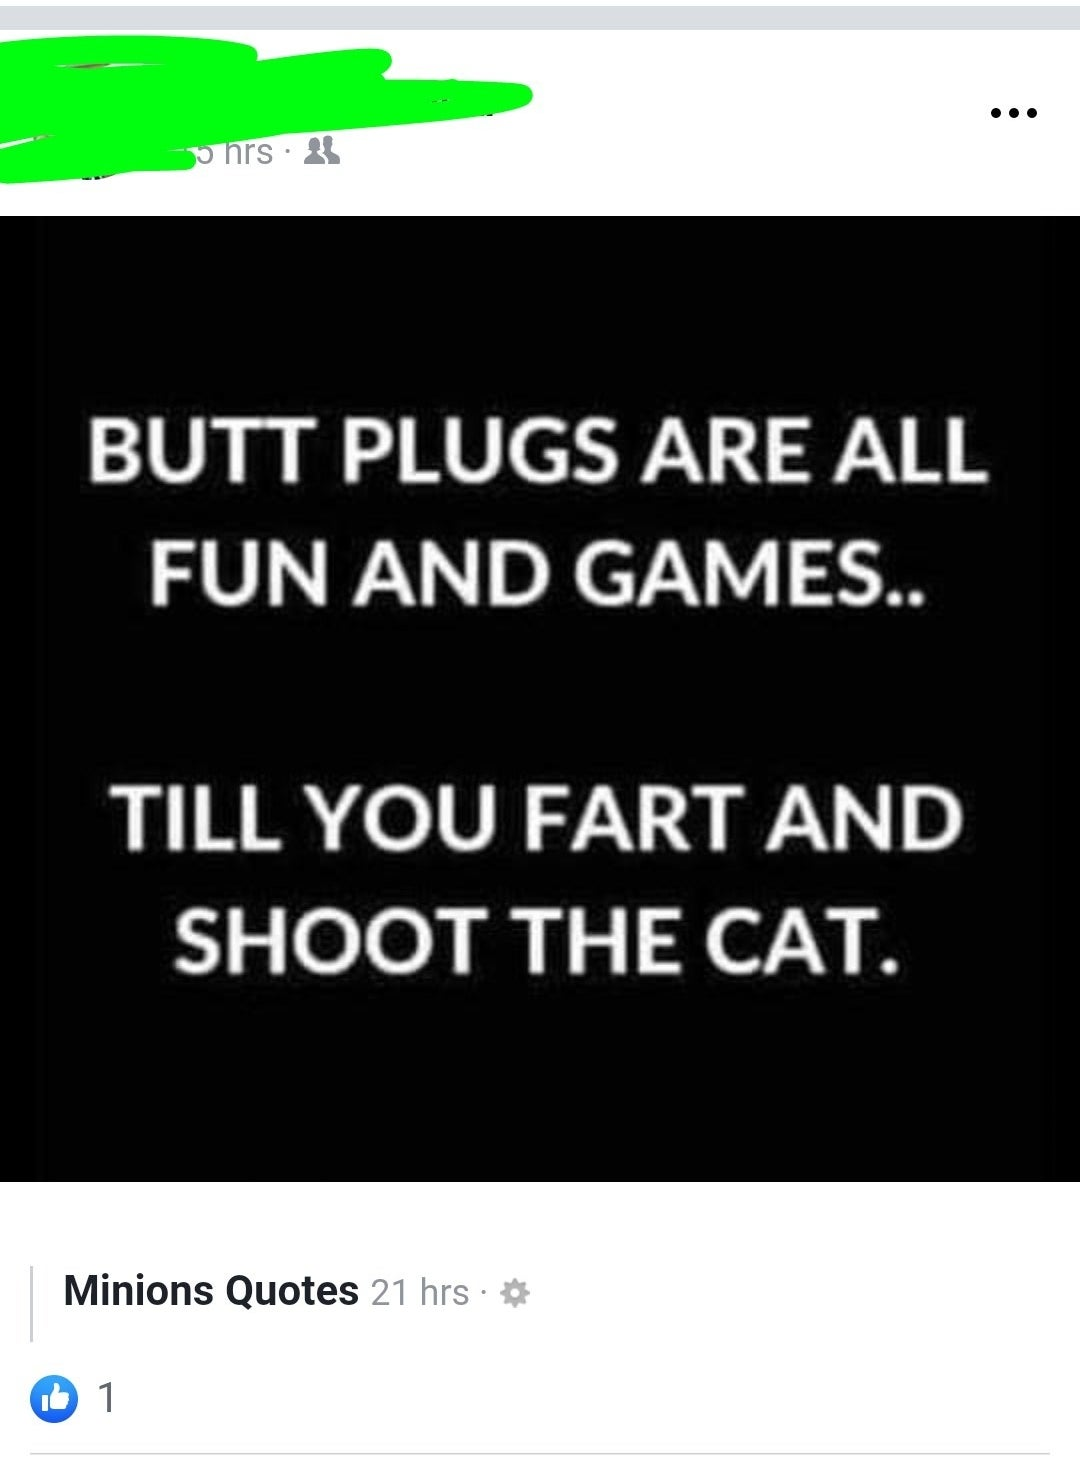 "A joke from a page called ""Minions Quotes"" that says ""butt plugs are all fun and games until you fart and shoot the cat"""